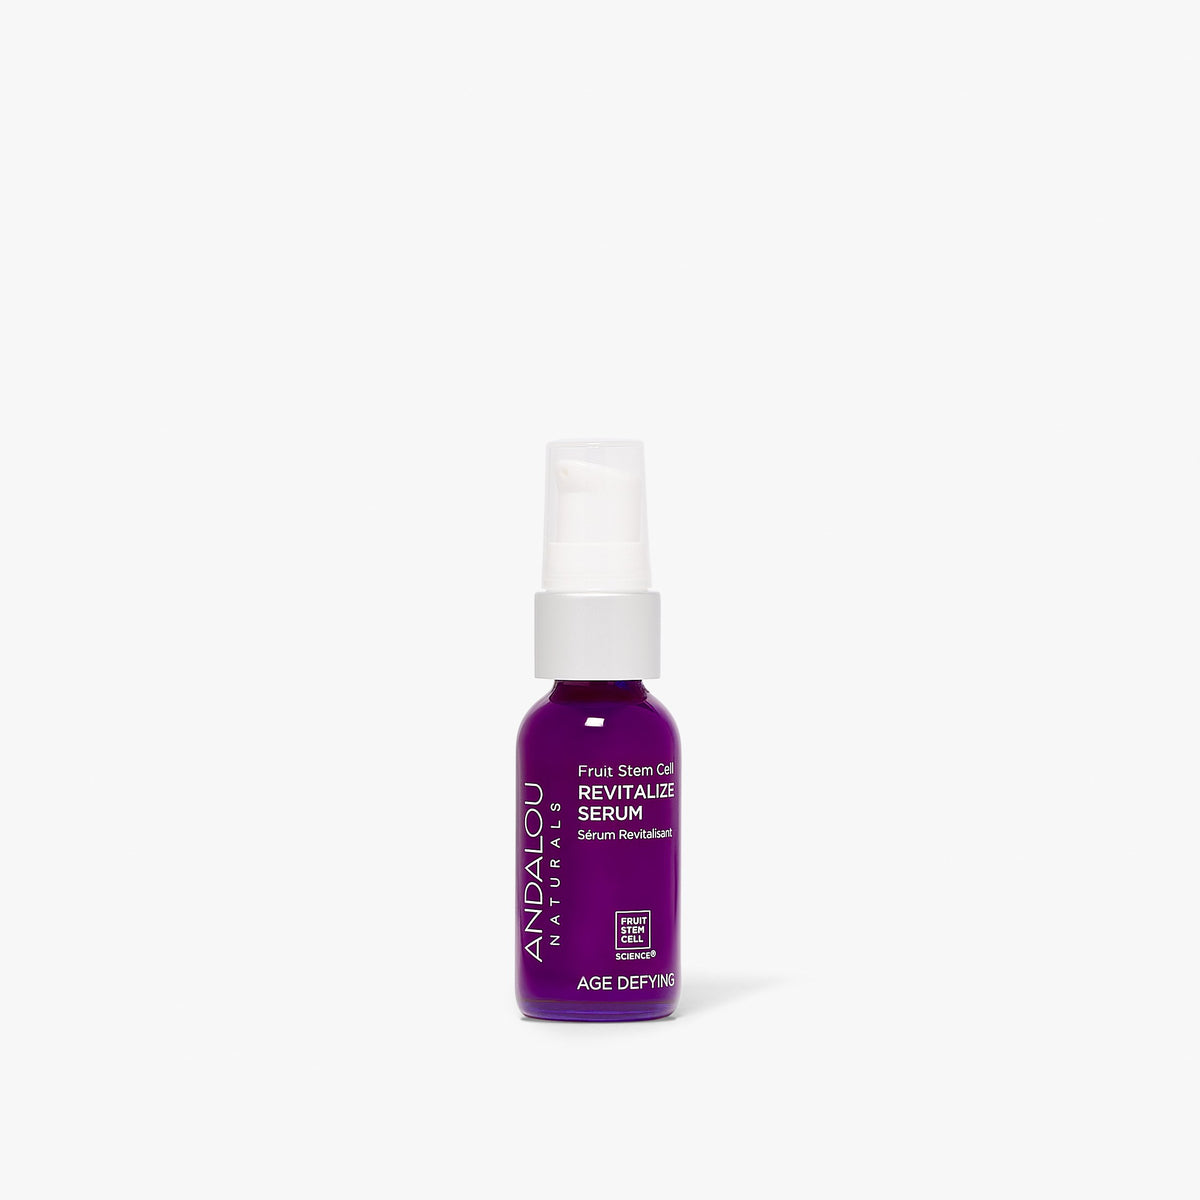 Andalou Naturals Age Defying Fruit Stem Cell Revitalize Serum bottle